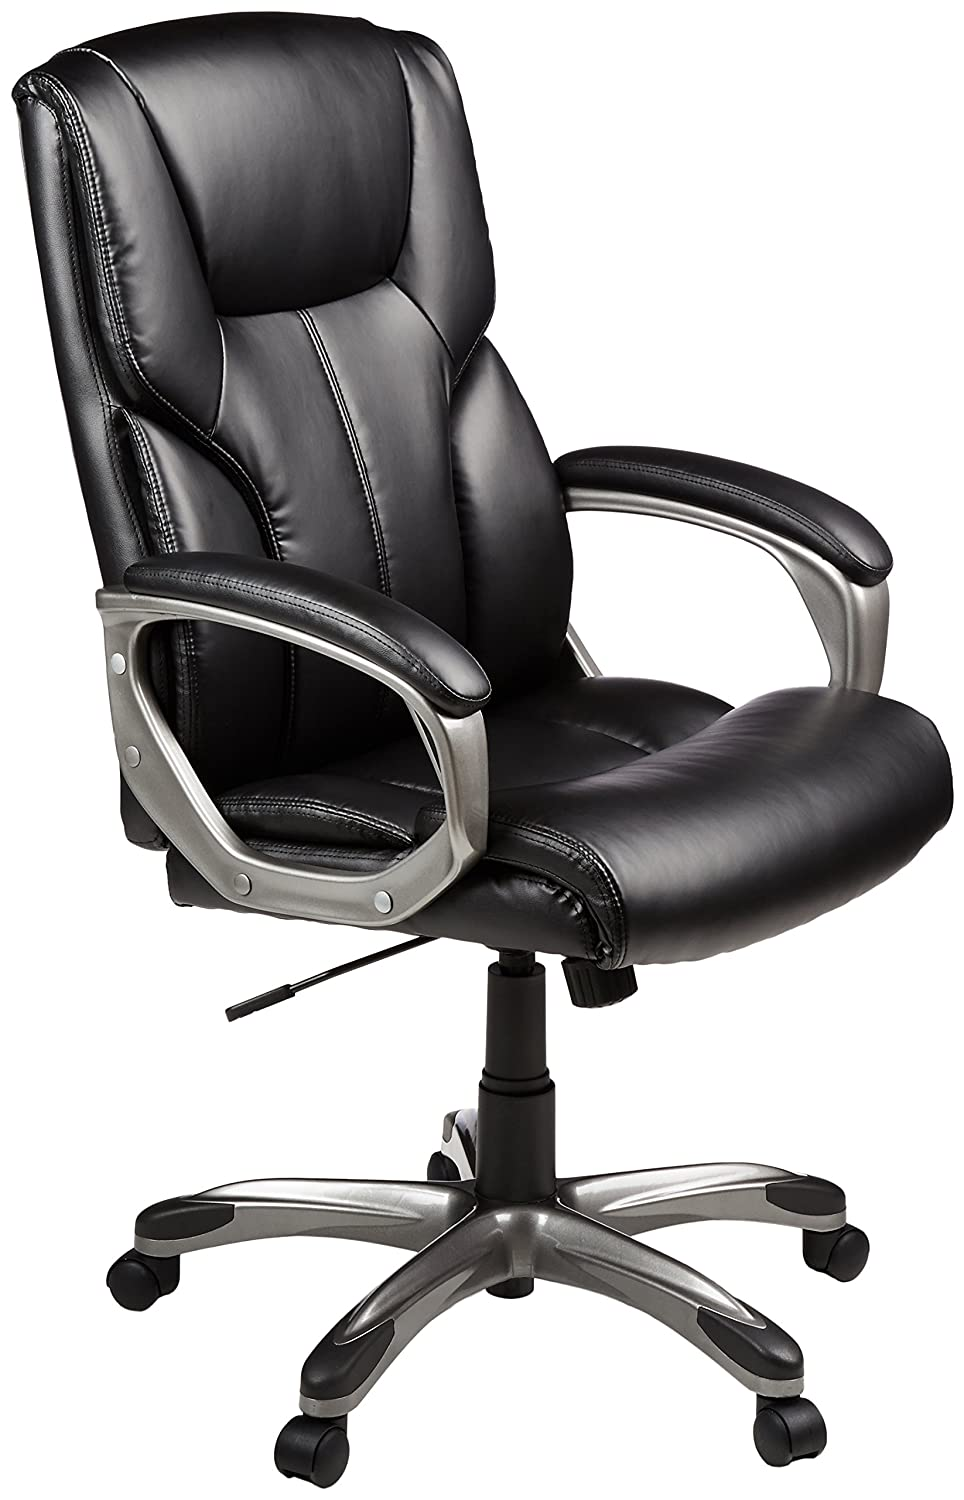 Top Most Comfortable Office Chair Detailed Review